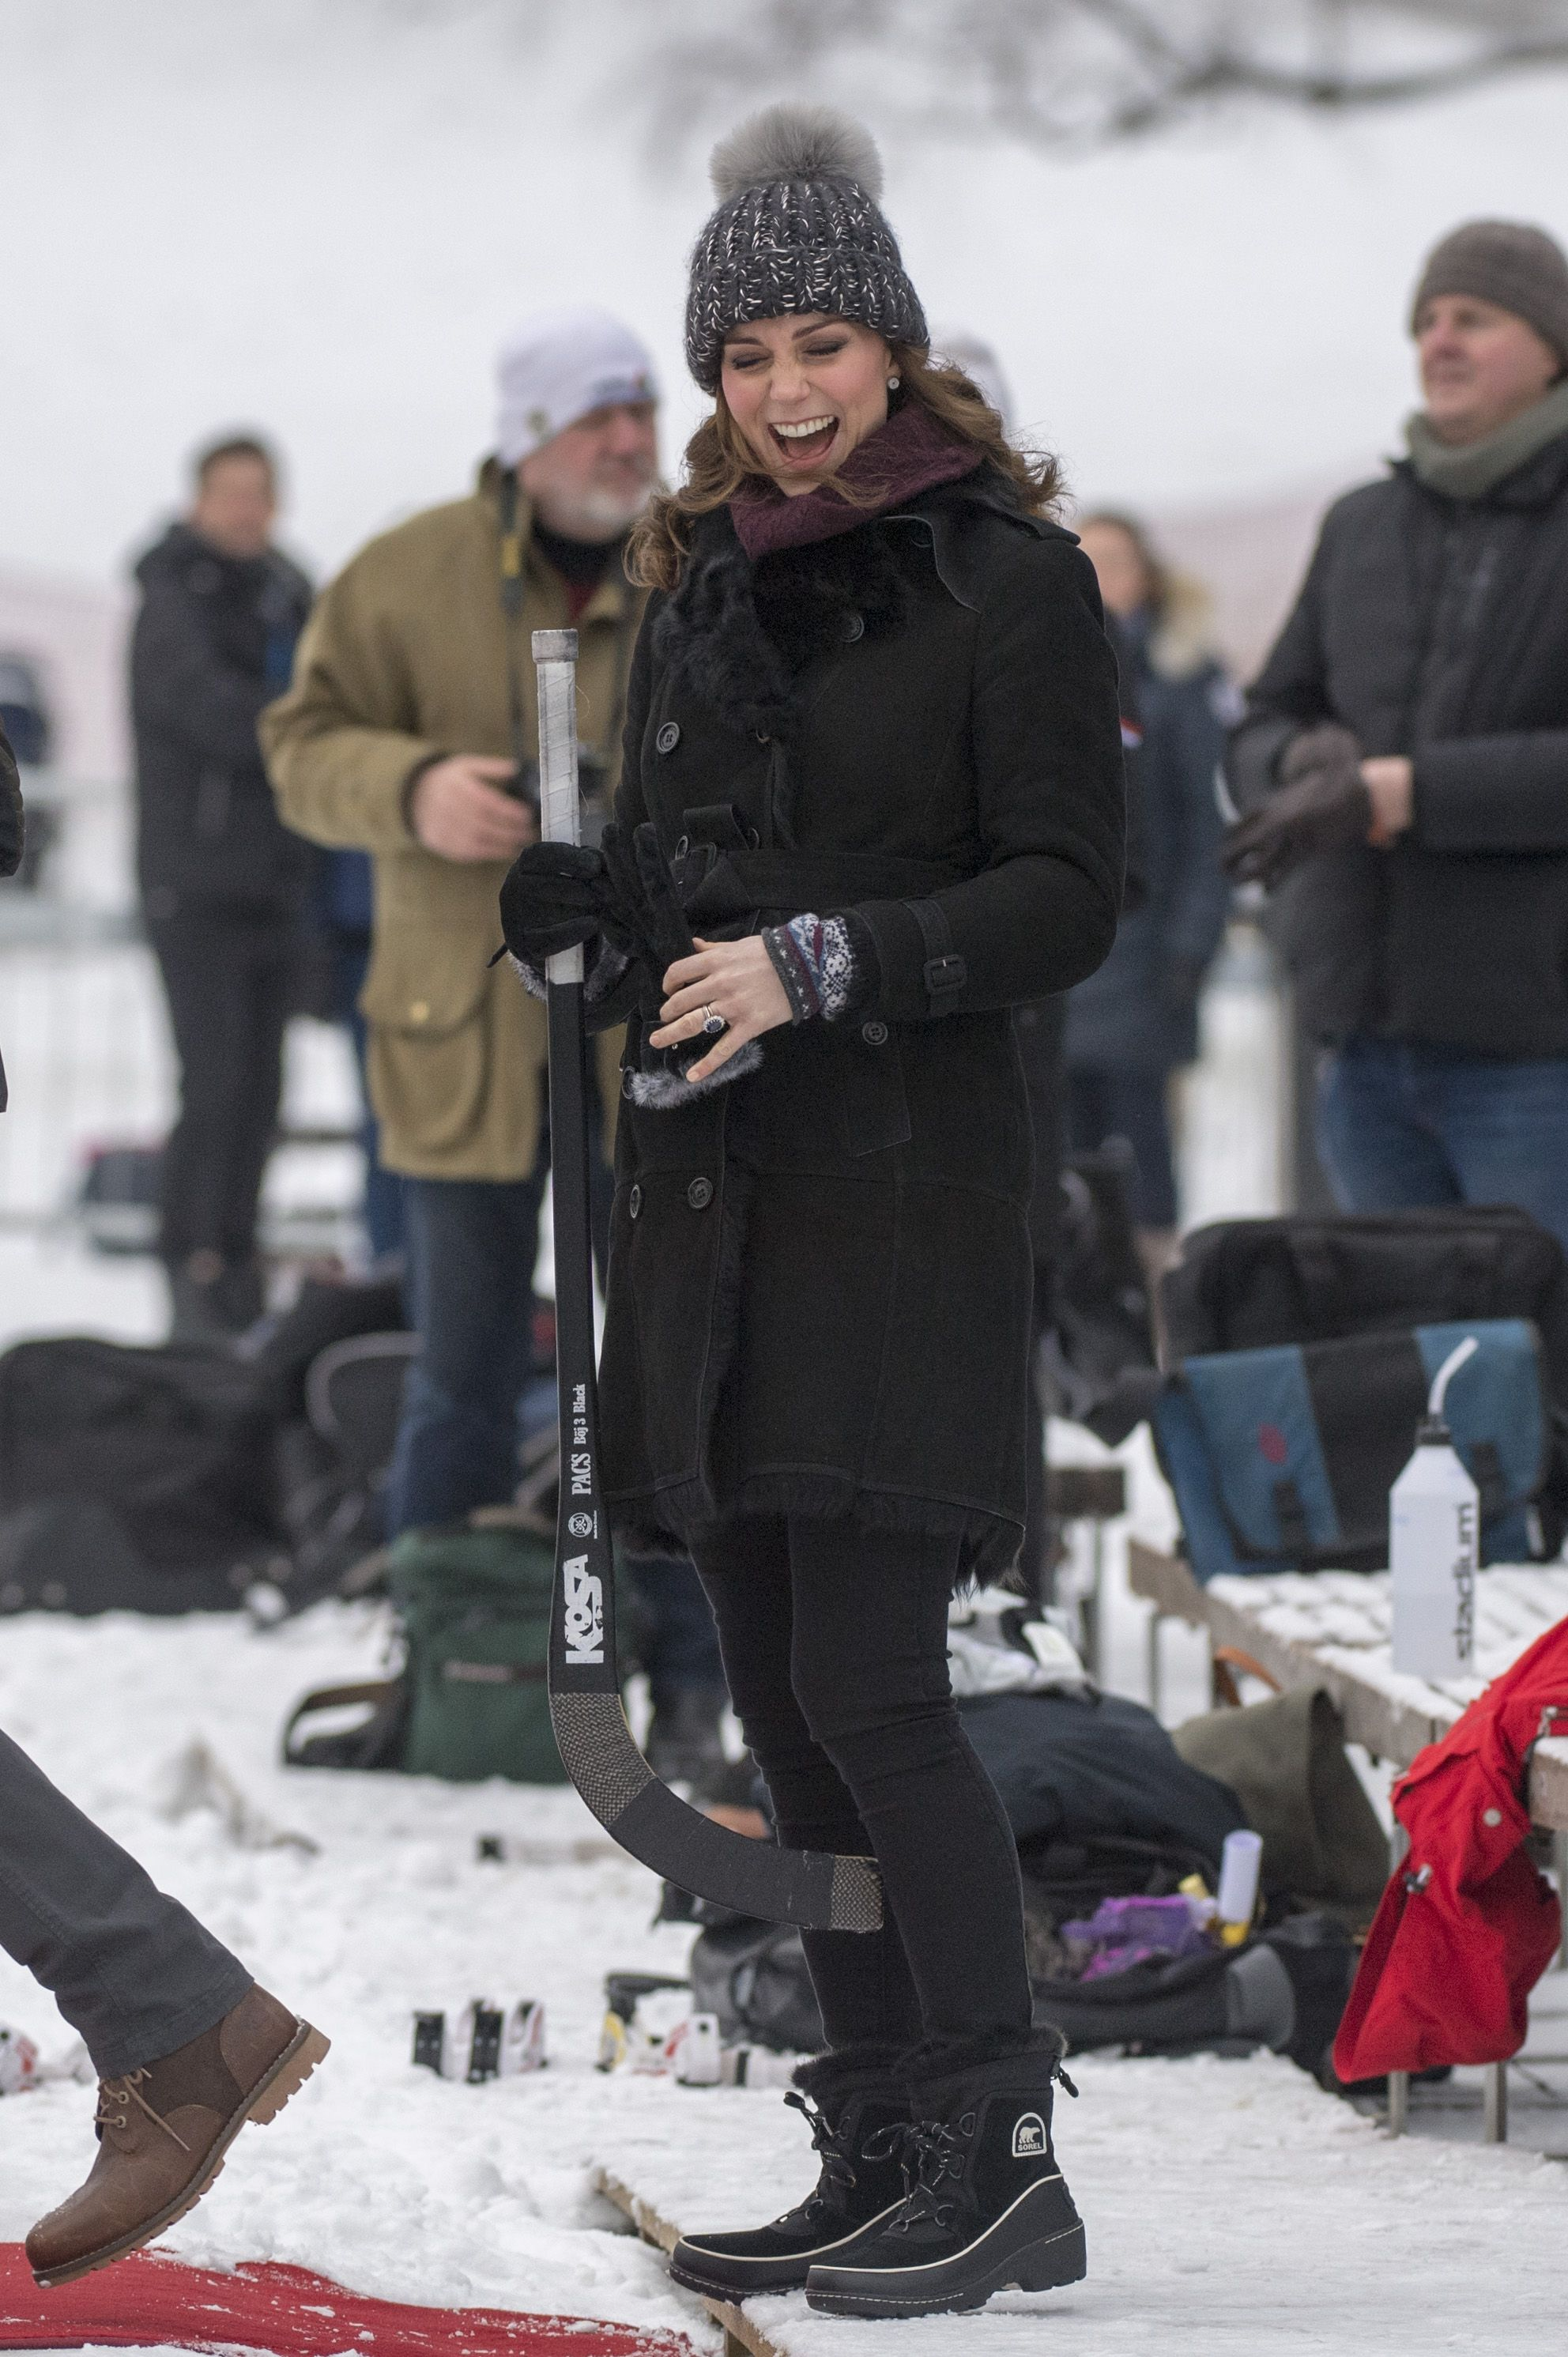 Shop Now Sorel Tivoli III Boots, $130 On January 30, 2018, during the royal visit to Sweden and Norway, the Duchess of Cambridge debuted a new pair of Sorel snow boots while playing bandy, a Swedish version of hockey.